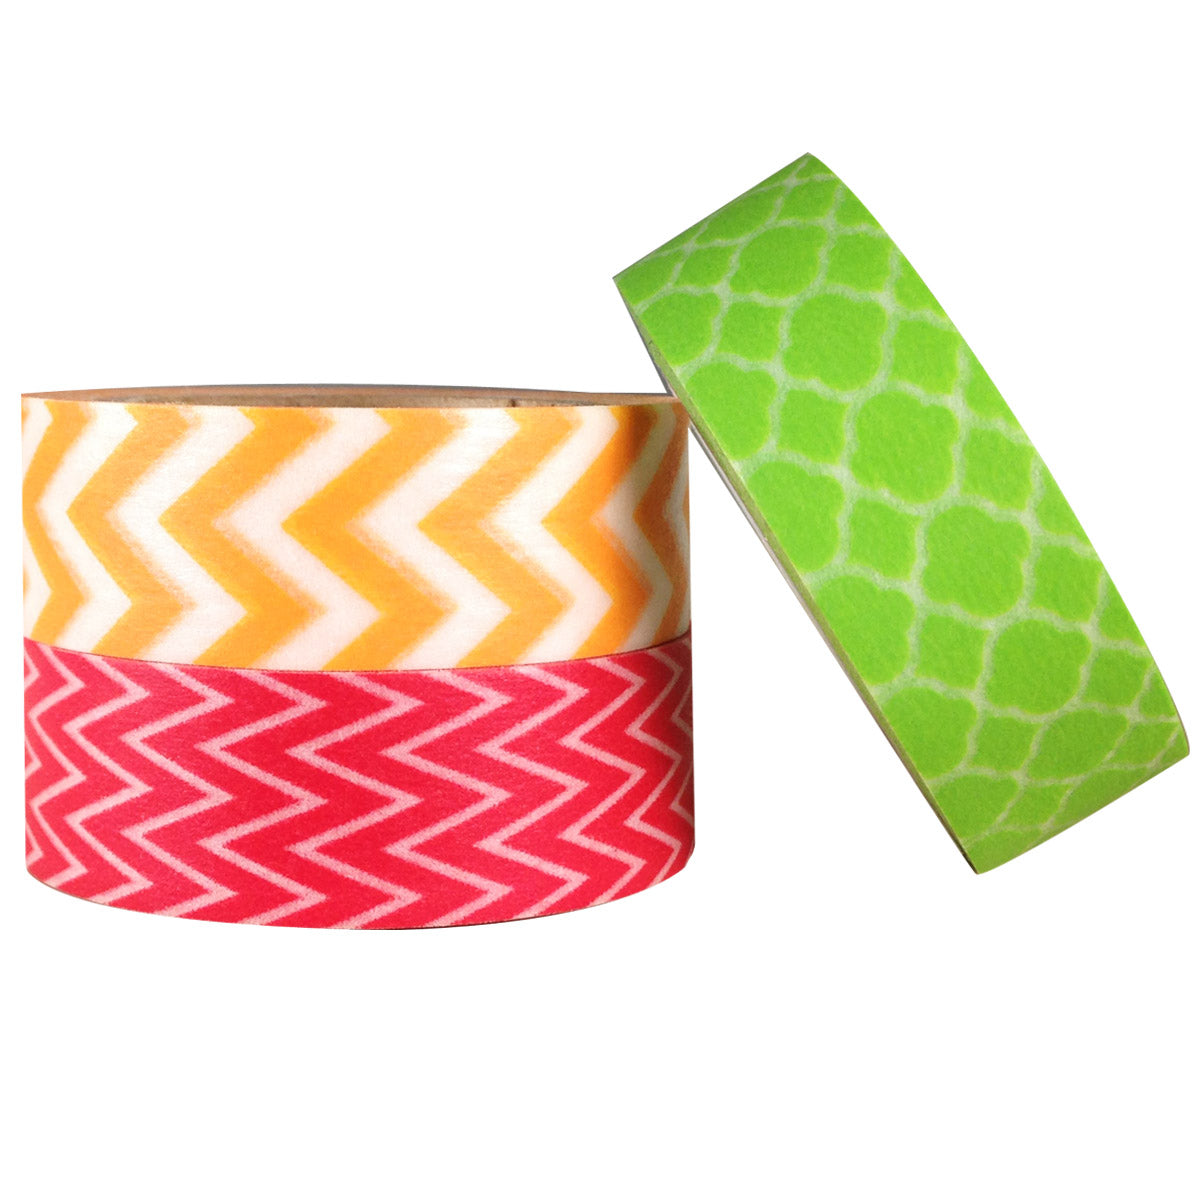 Wrapables Summer Flavors Japanese Washi Masking Tape (set of 3)